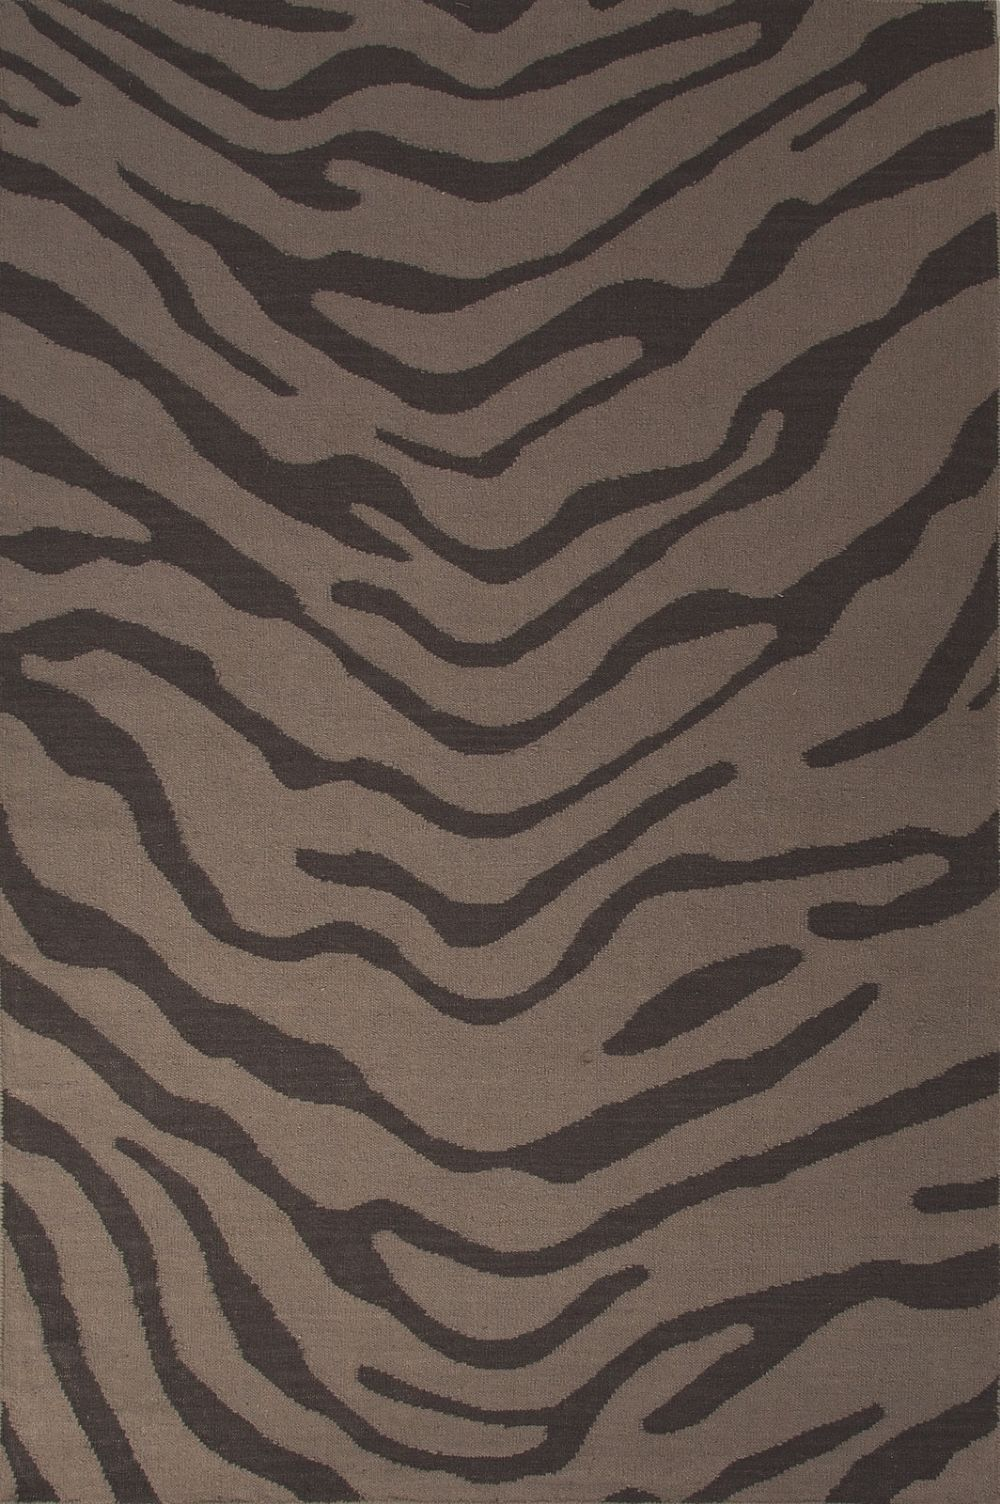 jaipur national geographic home  flat woven animal inspirations area rug collection